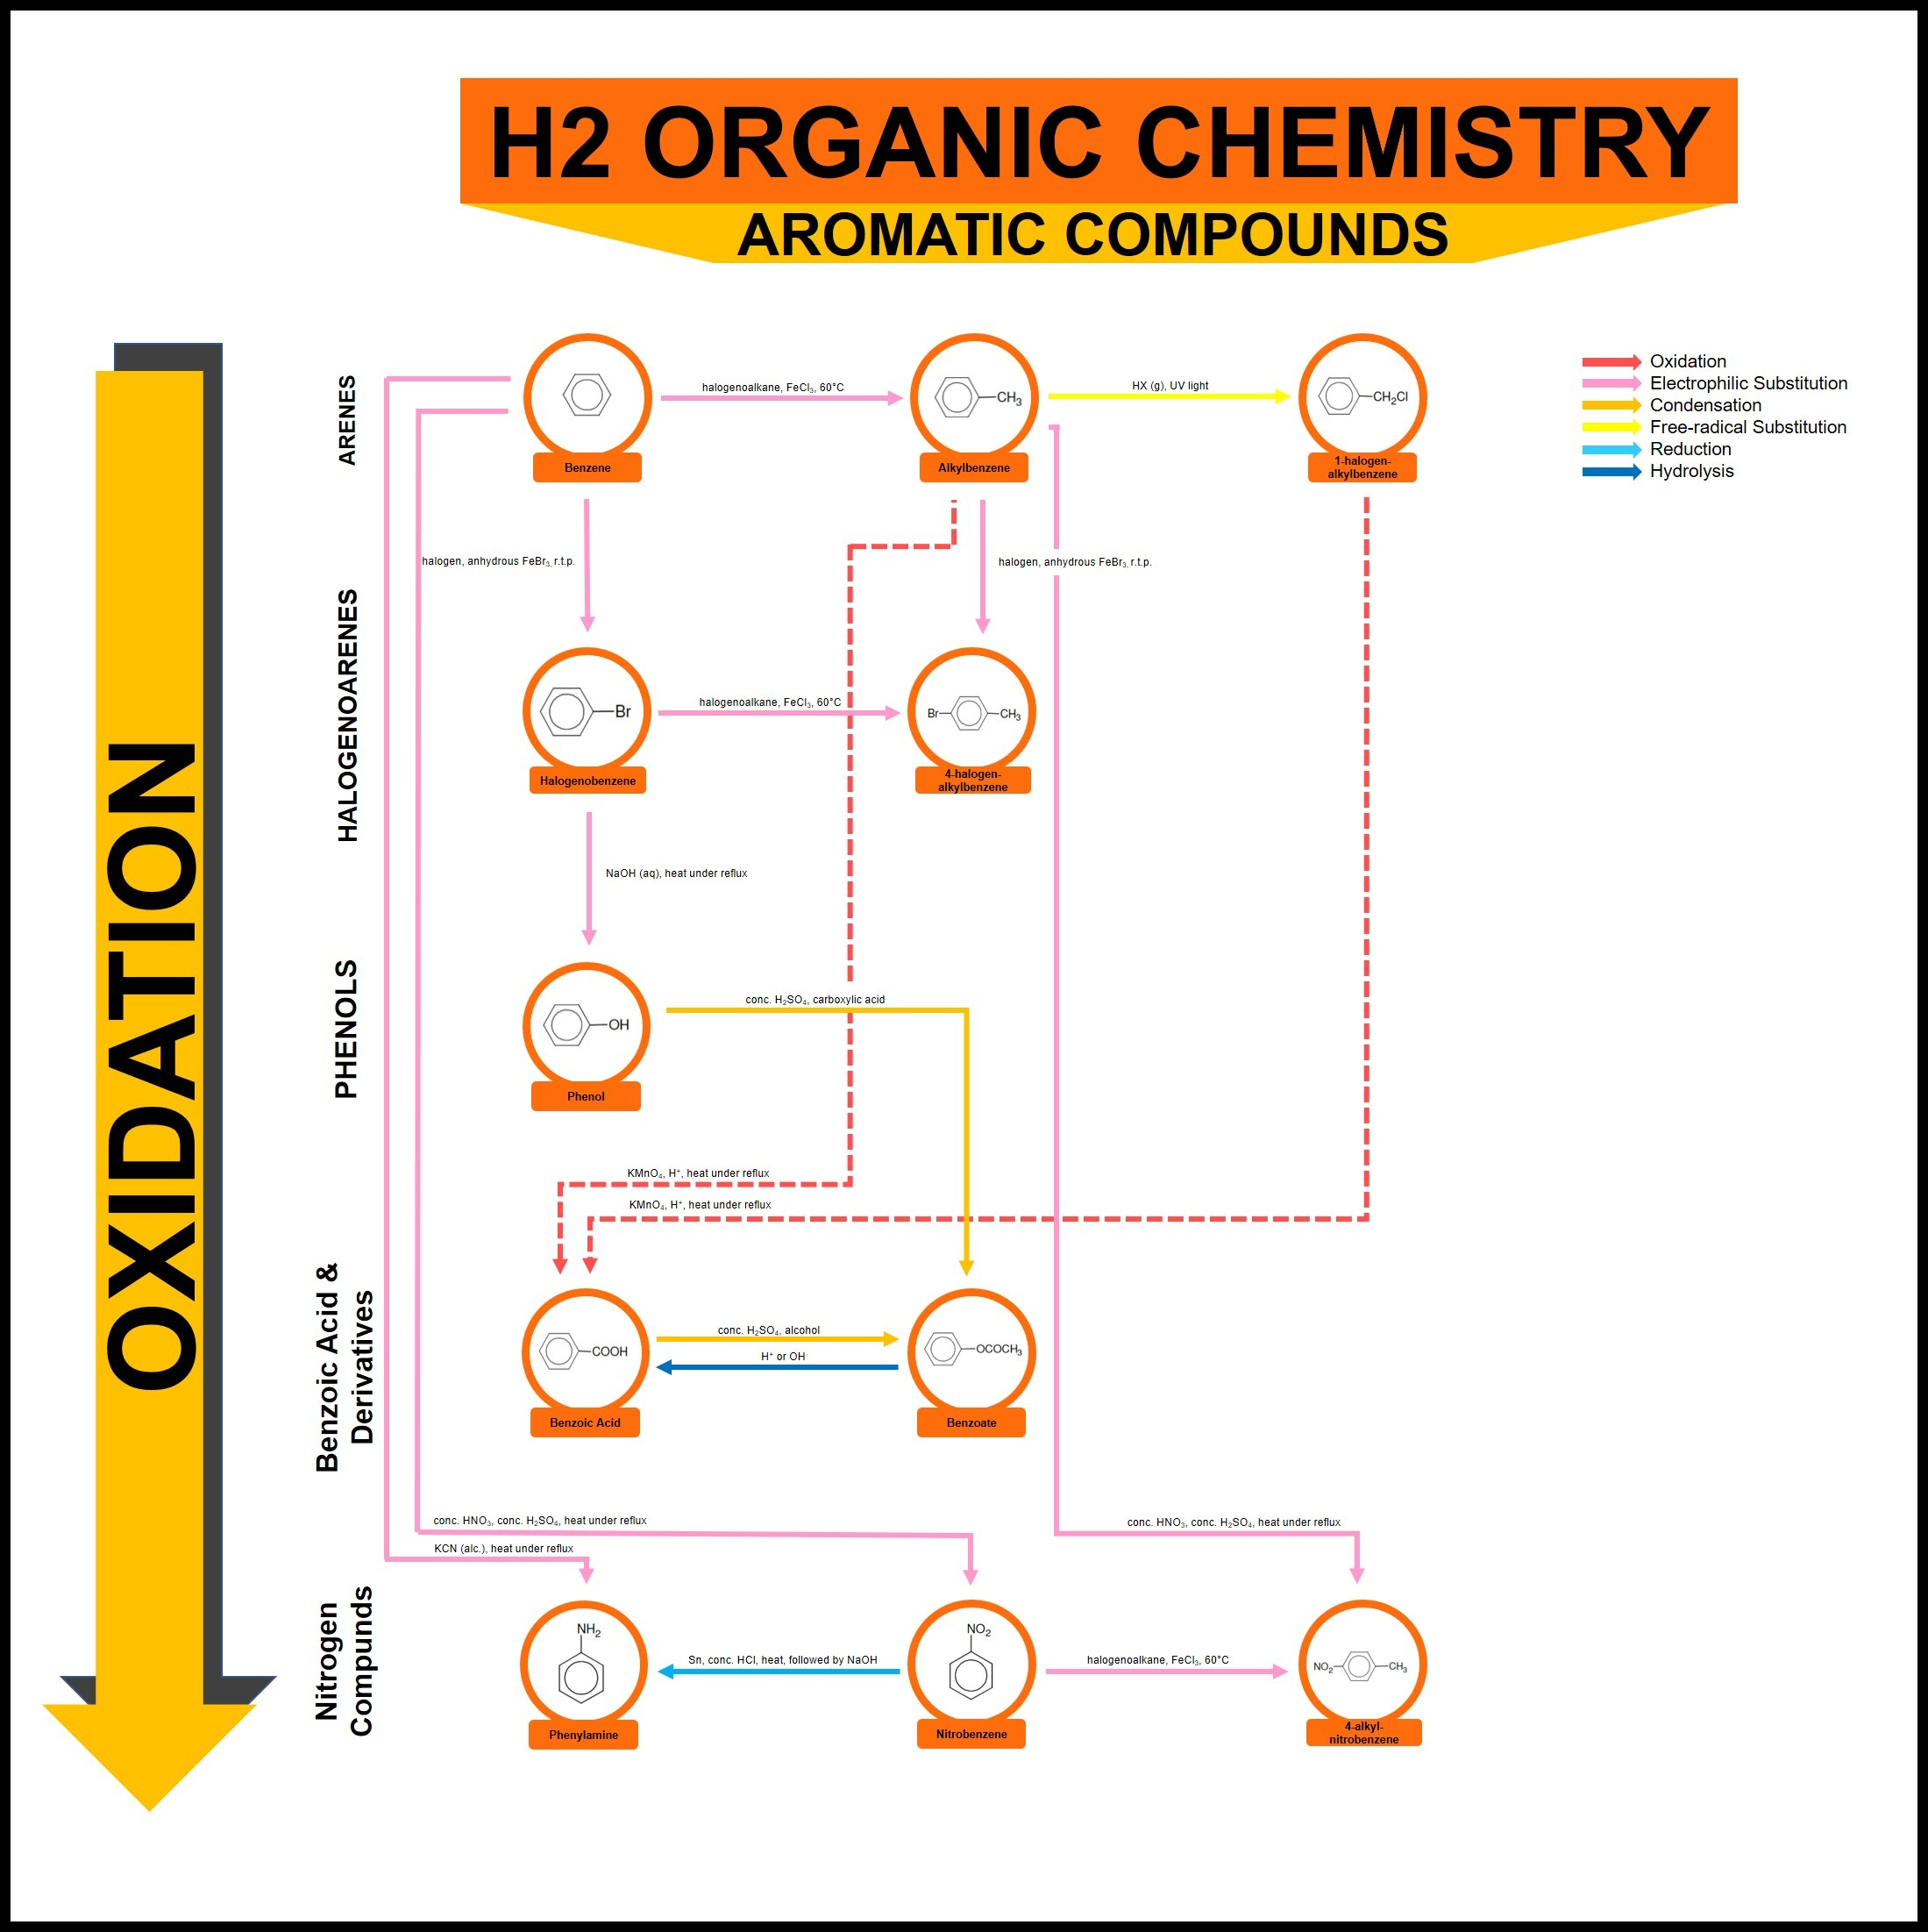 H2 Organic Chemistry Aromatic Reaction Summary